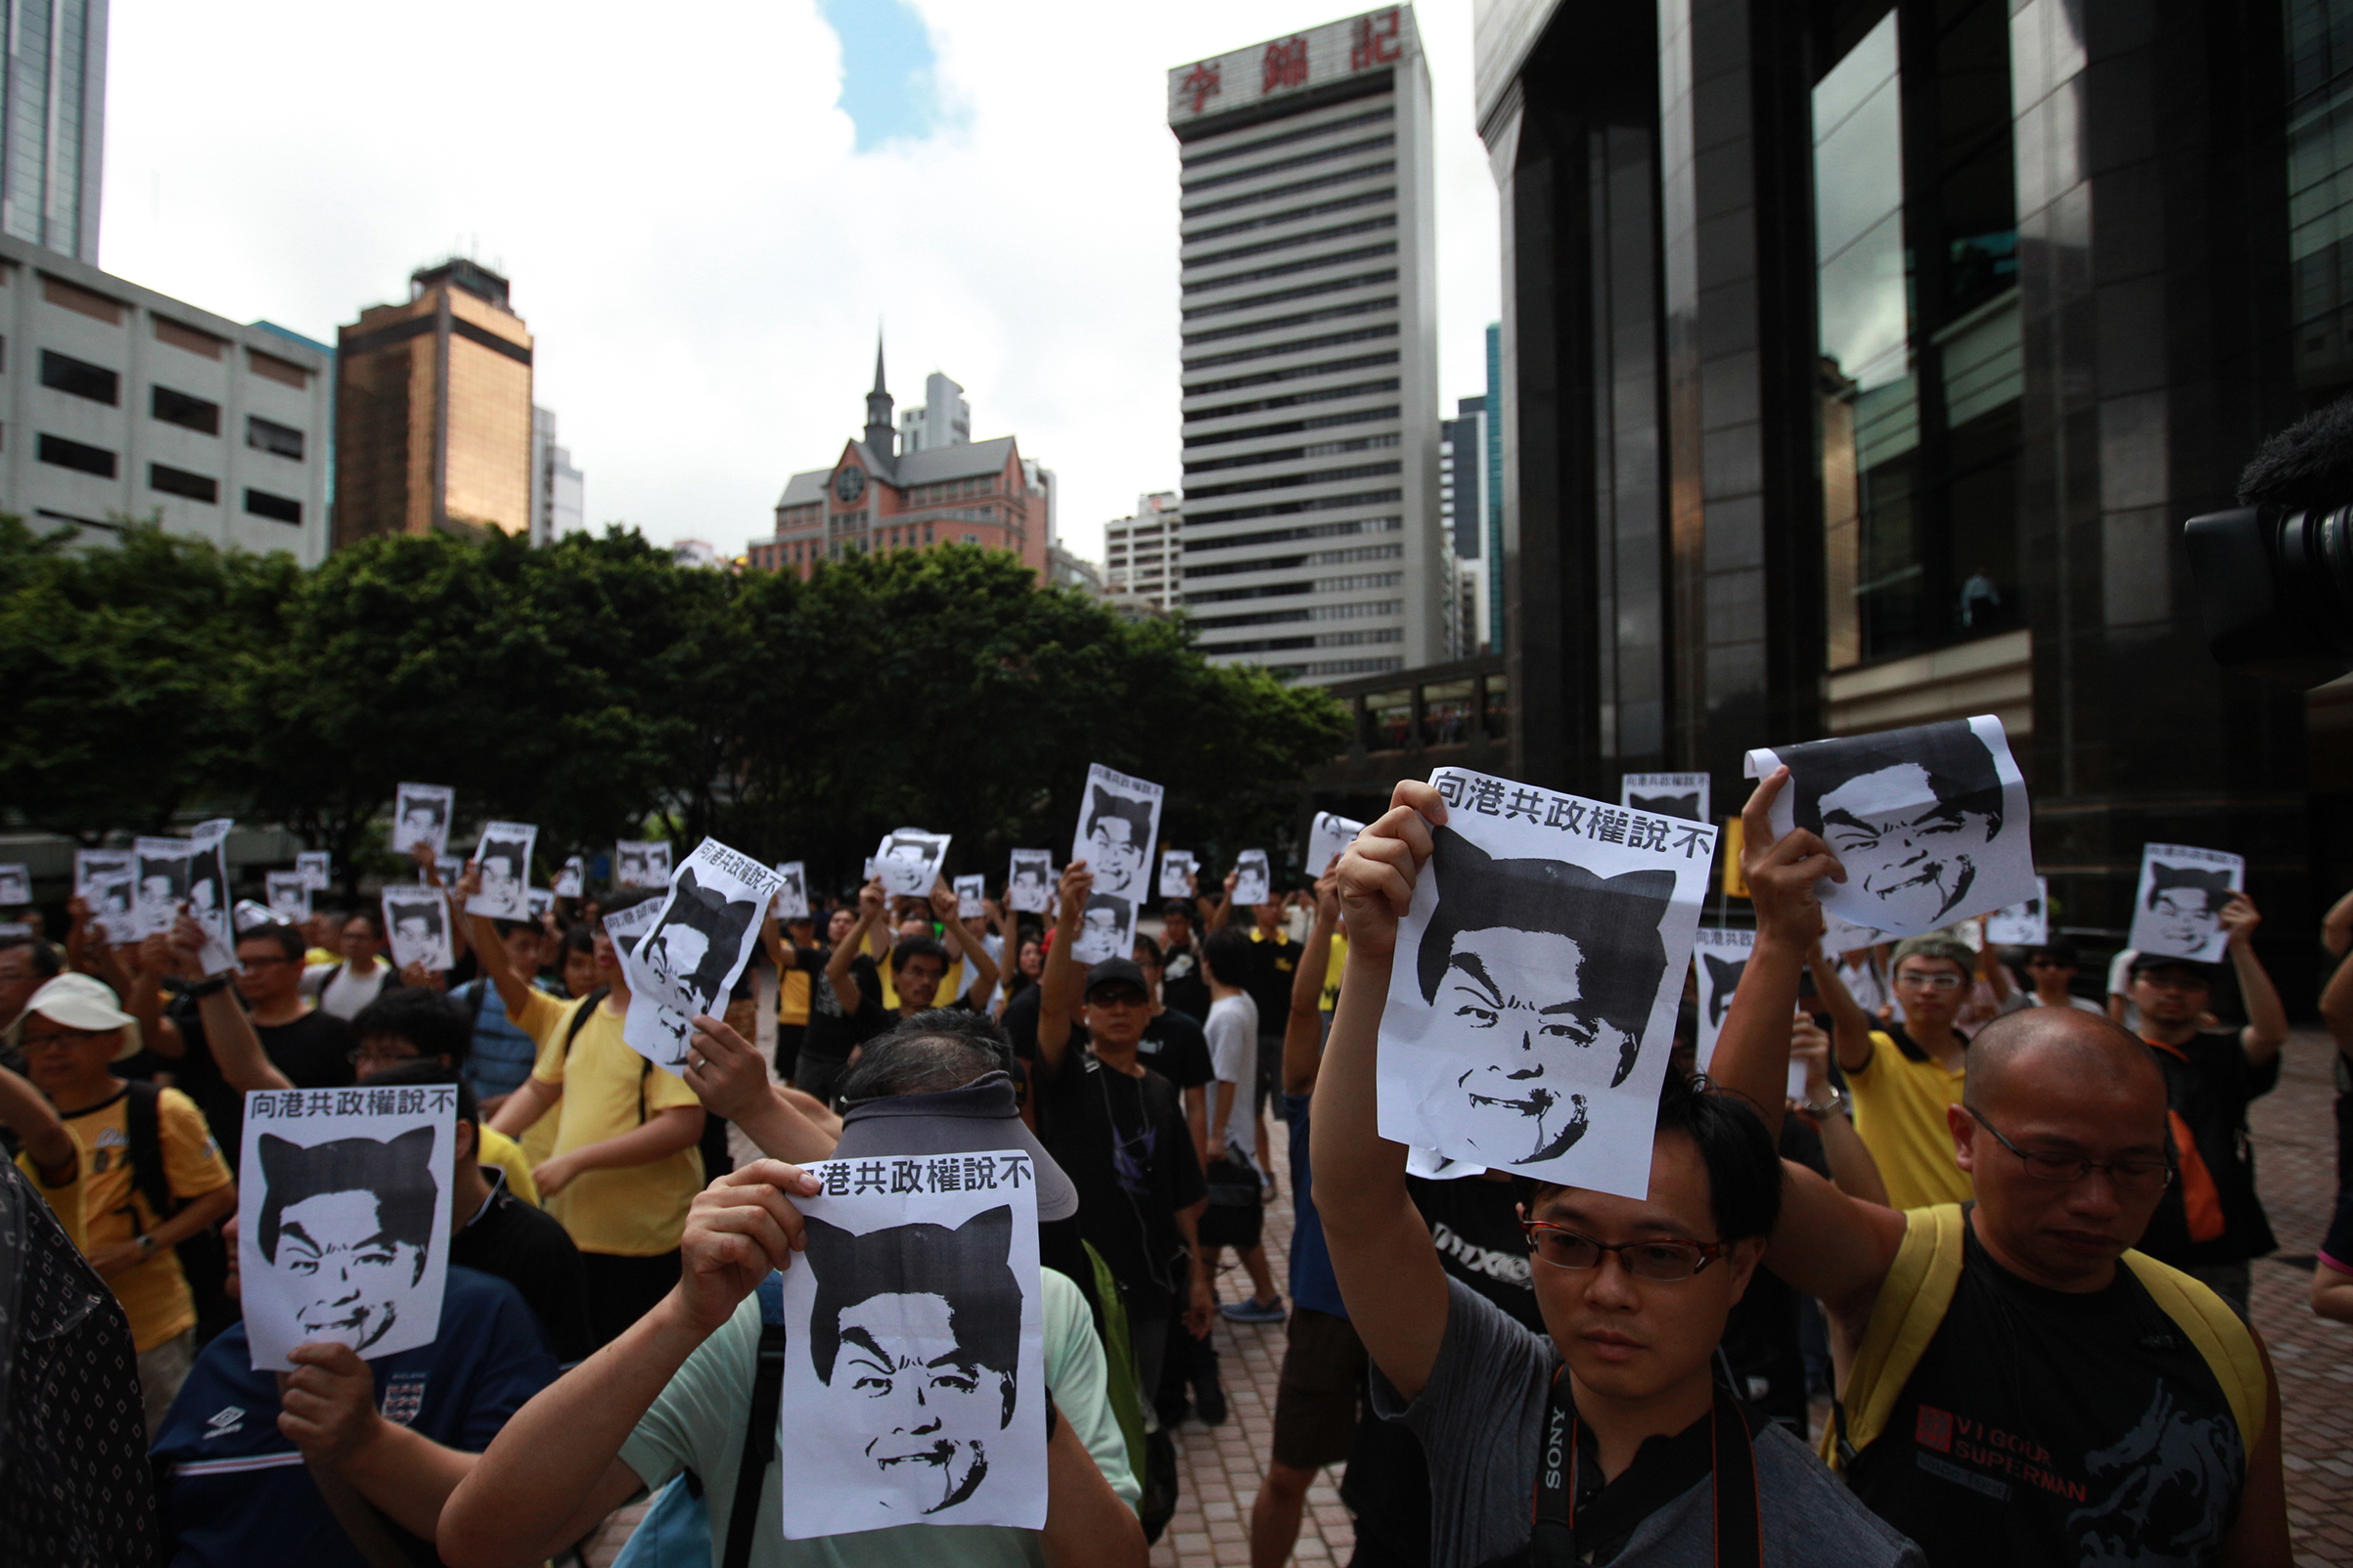 Protesters hold up pictures of Leung Chun-ying during a protest against the deeply unpopular Hong Kong Chief Executive on July 1, 2012. Leung's swearing in coincided with the 15th anniversary of Chinas resumption of sovereignty over Hong Kong. Controversially, he gave his inauguration speech in Mandarin instead of the territory's native Cantonese — one of several signs that caused many Hongkongers to regard him as Beijing's representative and not theirs.